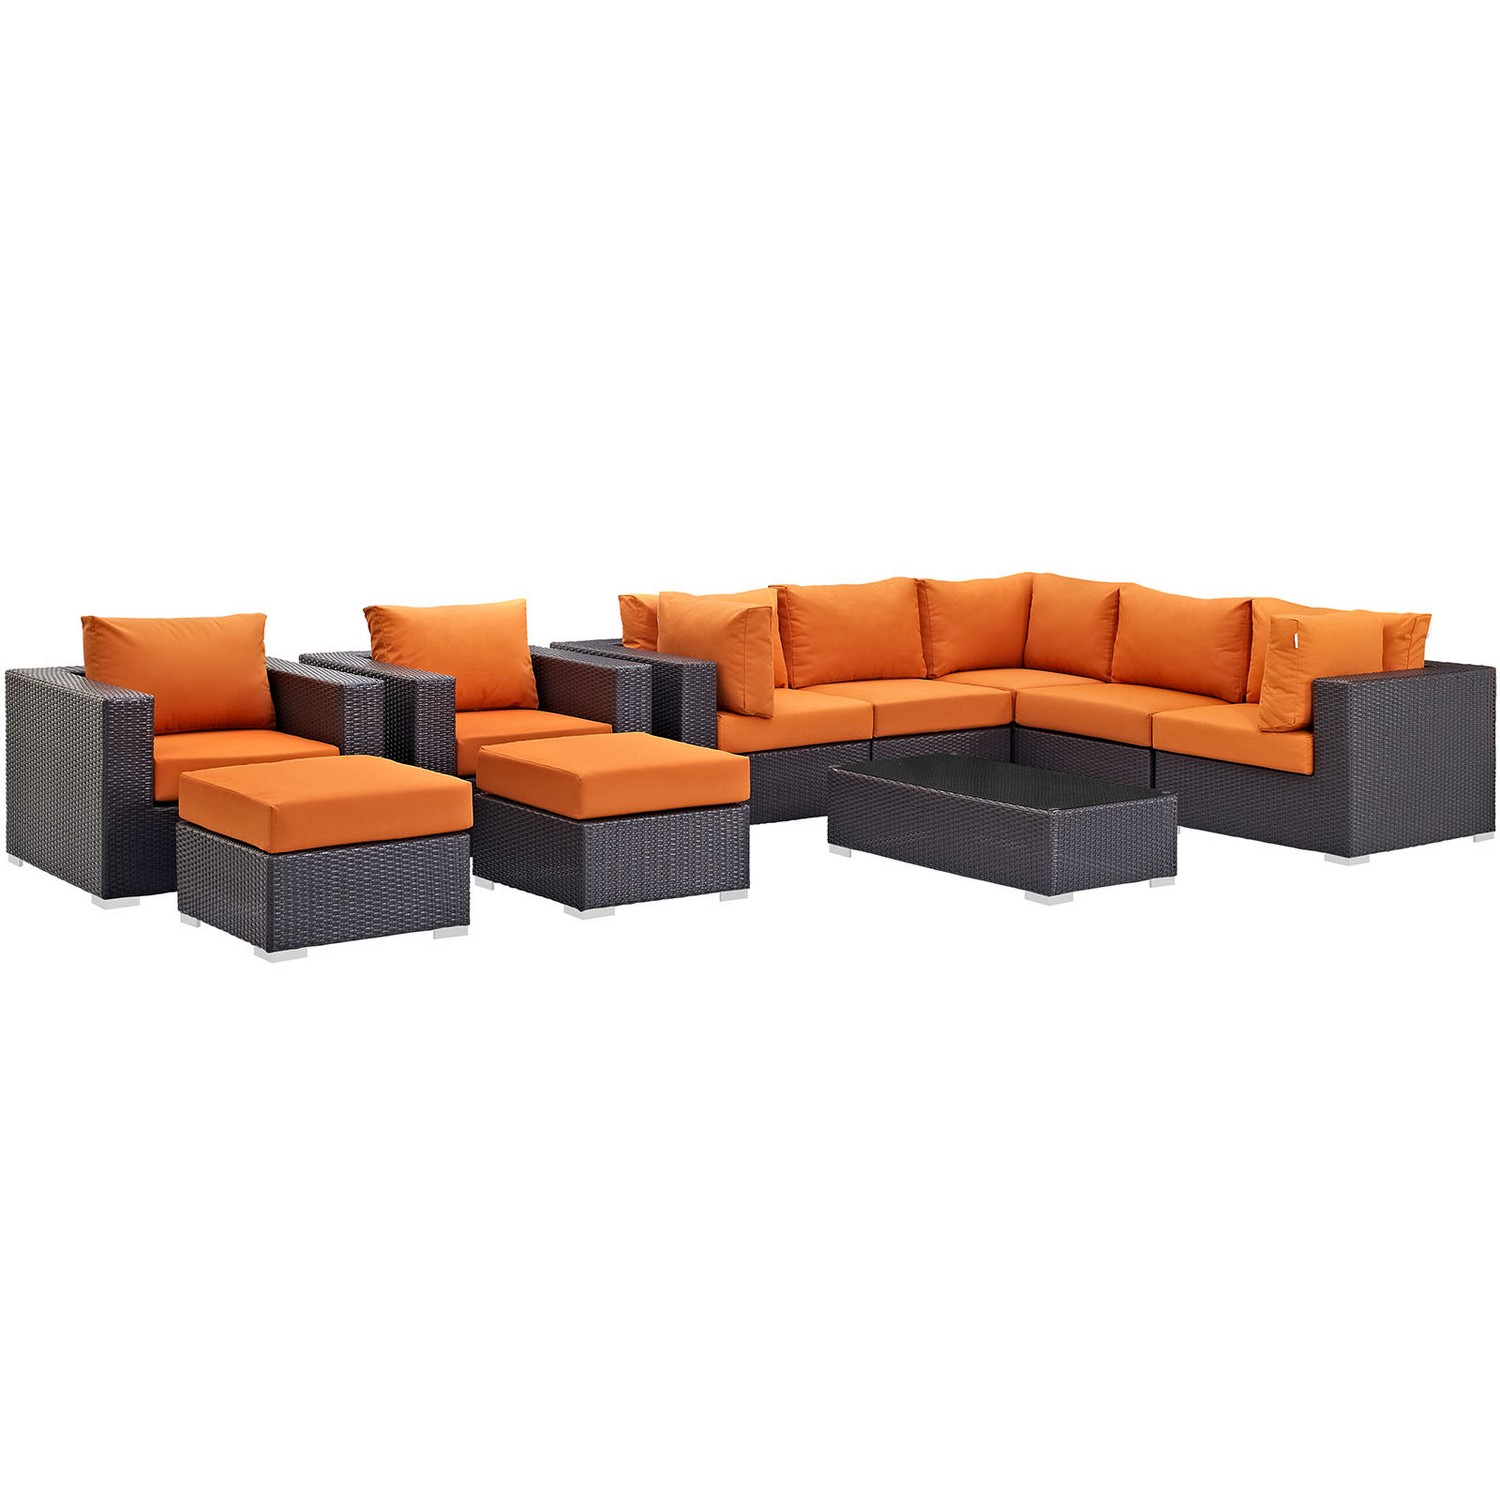 Modway Convene 10 Piece Outdoor Patio Sectional Set - Espresso Orange